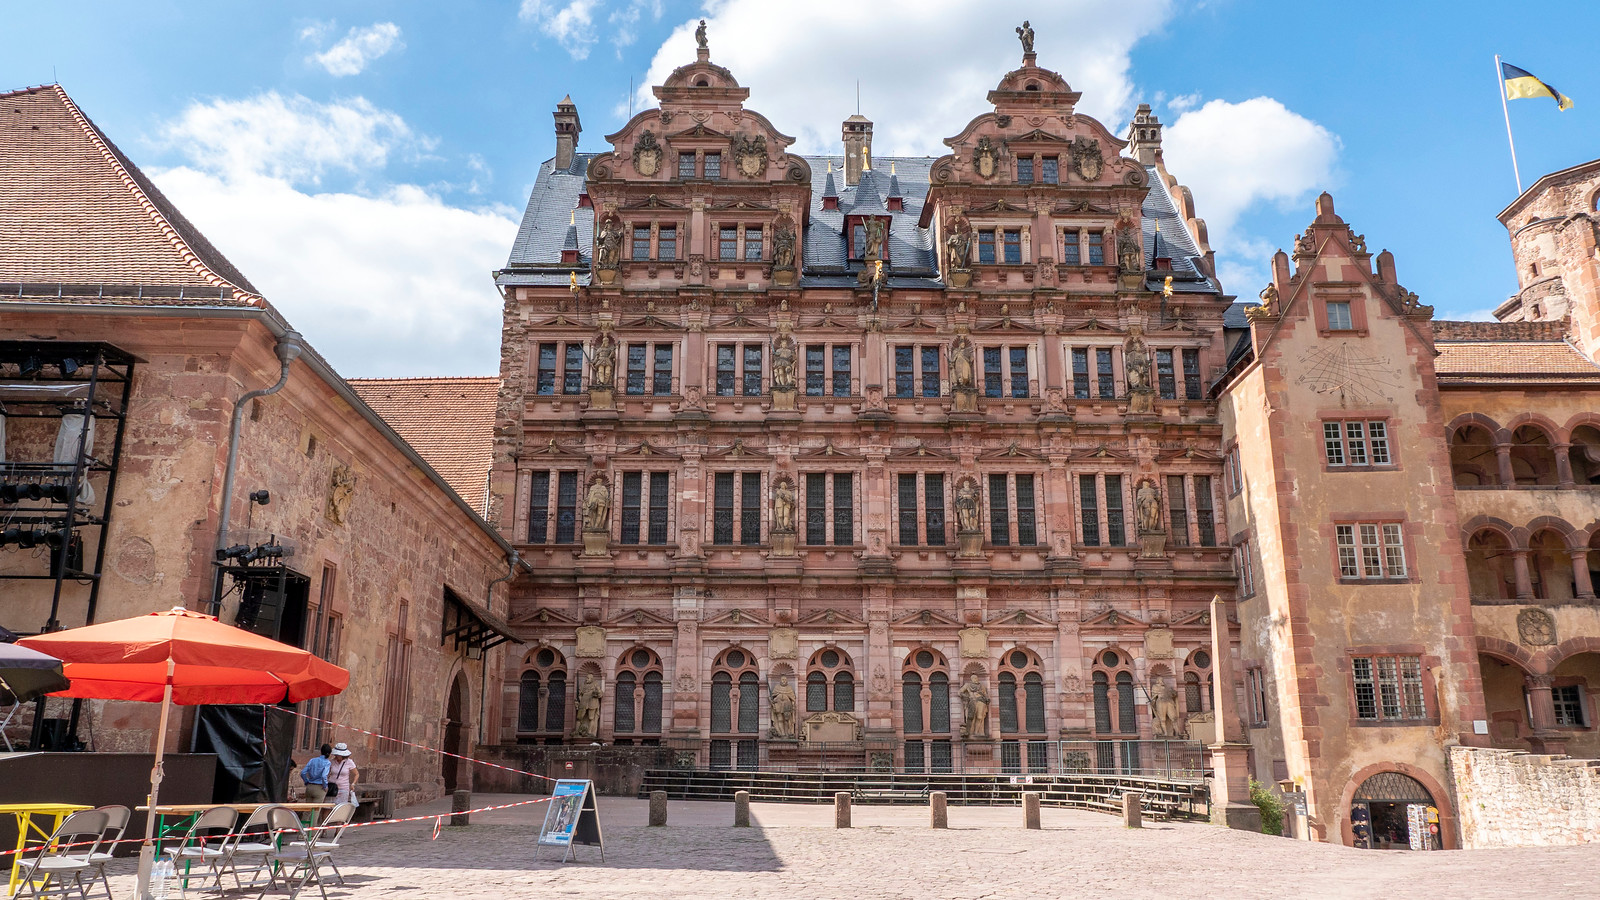 Spectacular Things to Do in Heidelberg Germany - The Ottheinrich Building, Heidelberg Castle